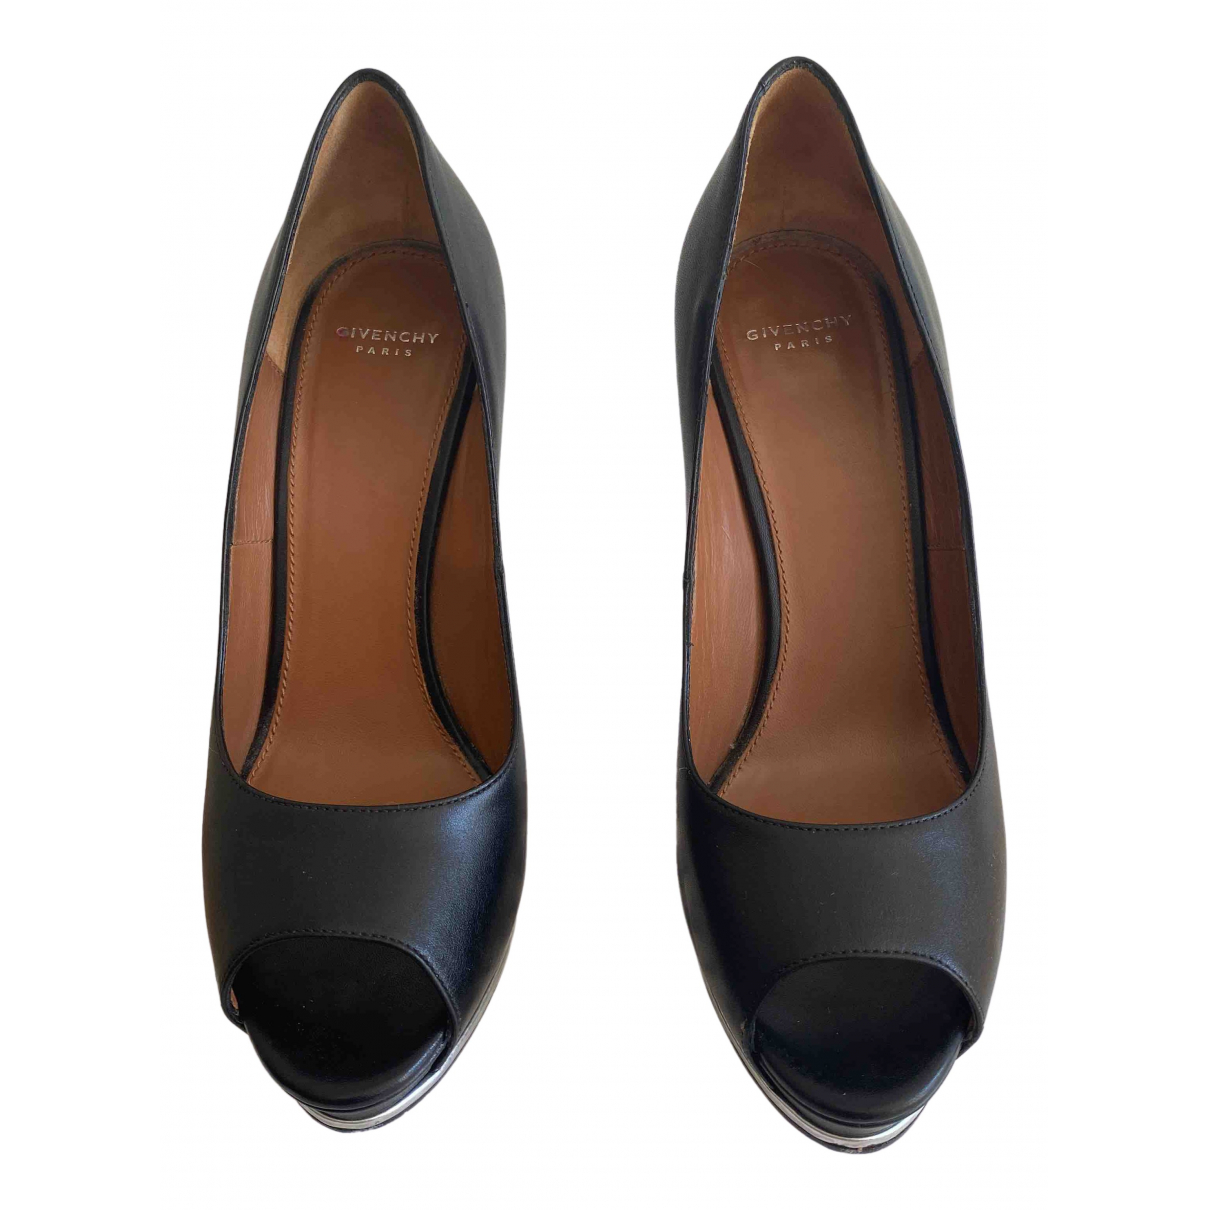 Givenchy \N Black Leather Heels for Women 36 EU